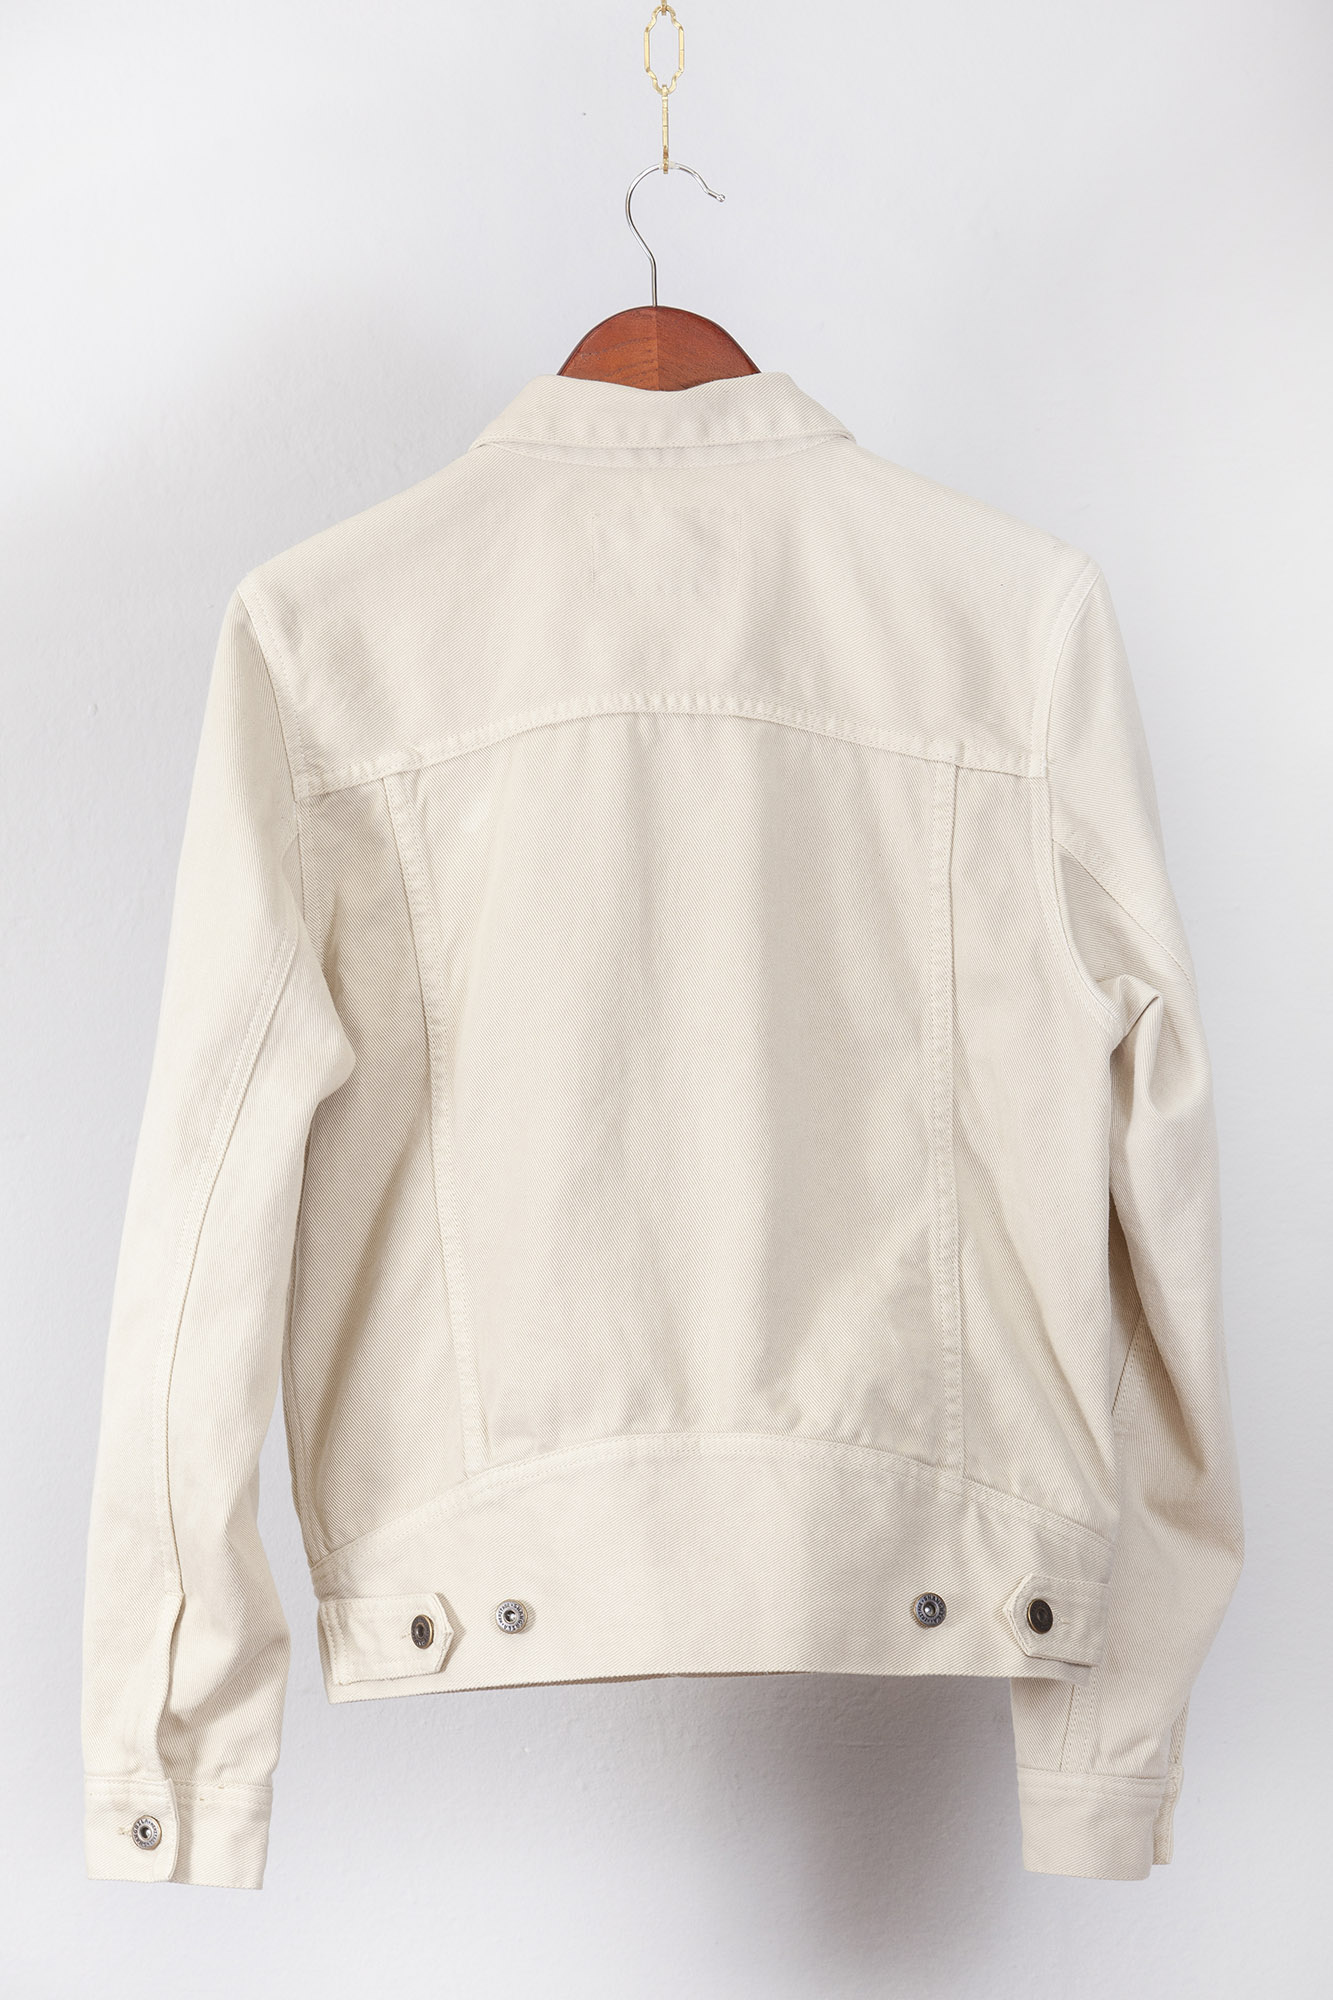 shangri-la-heritage-single-rider-ivory-canvas-jacket-still-life-back